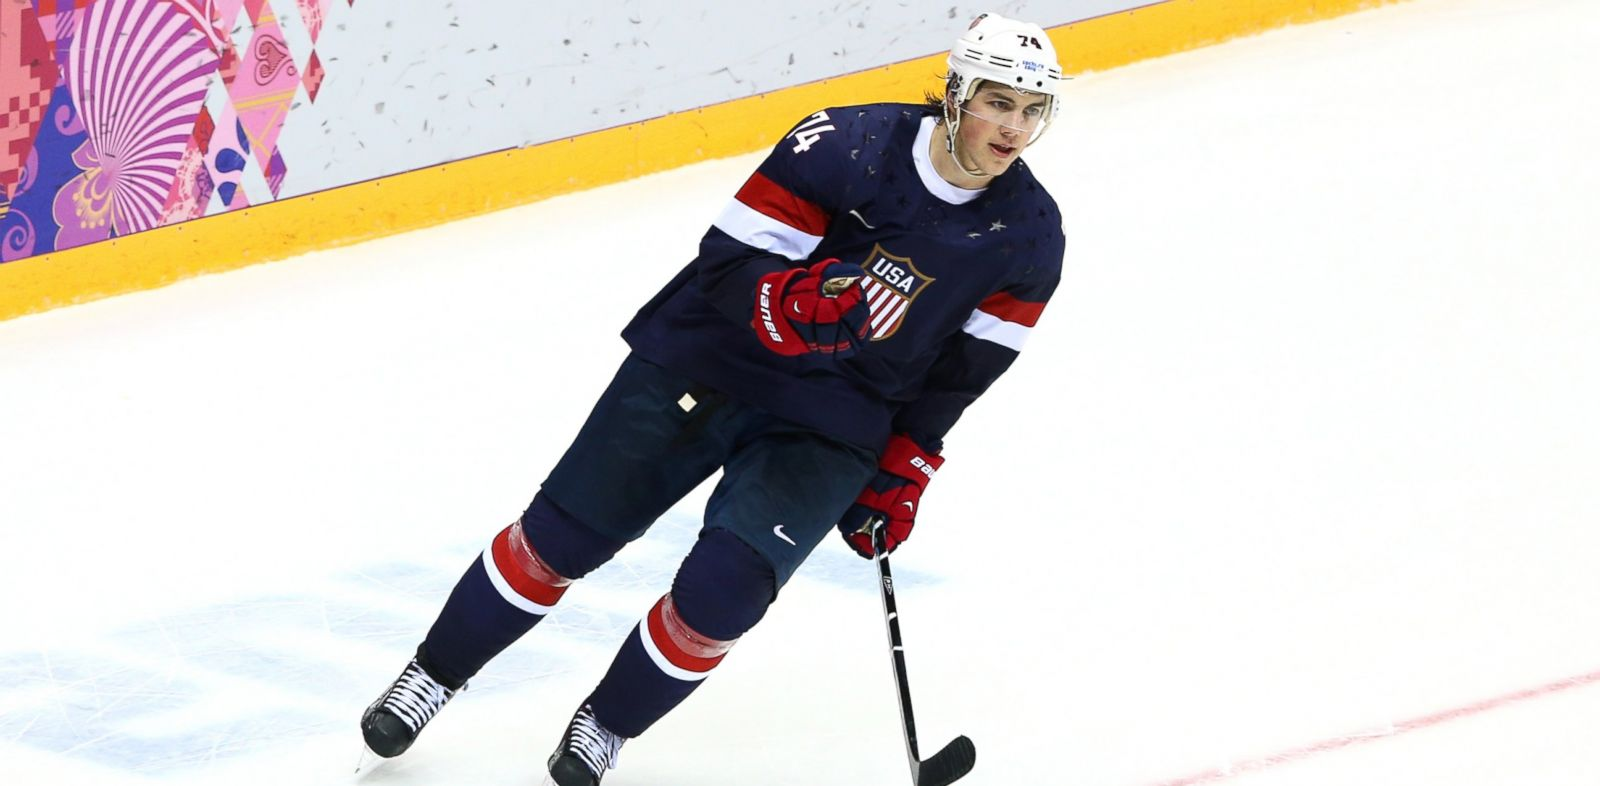 PHOTO: T.J. Oshie #74 of the United States celebrates after scoring a shootout goal against Russia during the mens ice hockey preliminary round game at the Sochi 2014 Winter Olympics at Bolshoy Ice Dome on Feb. 15, 2014 in Sochi, Russia.